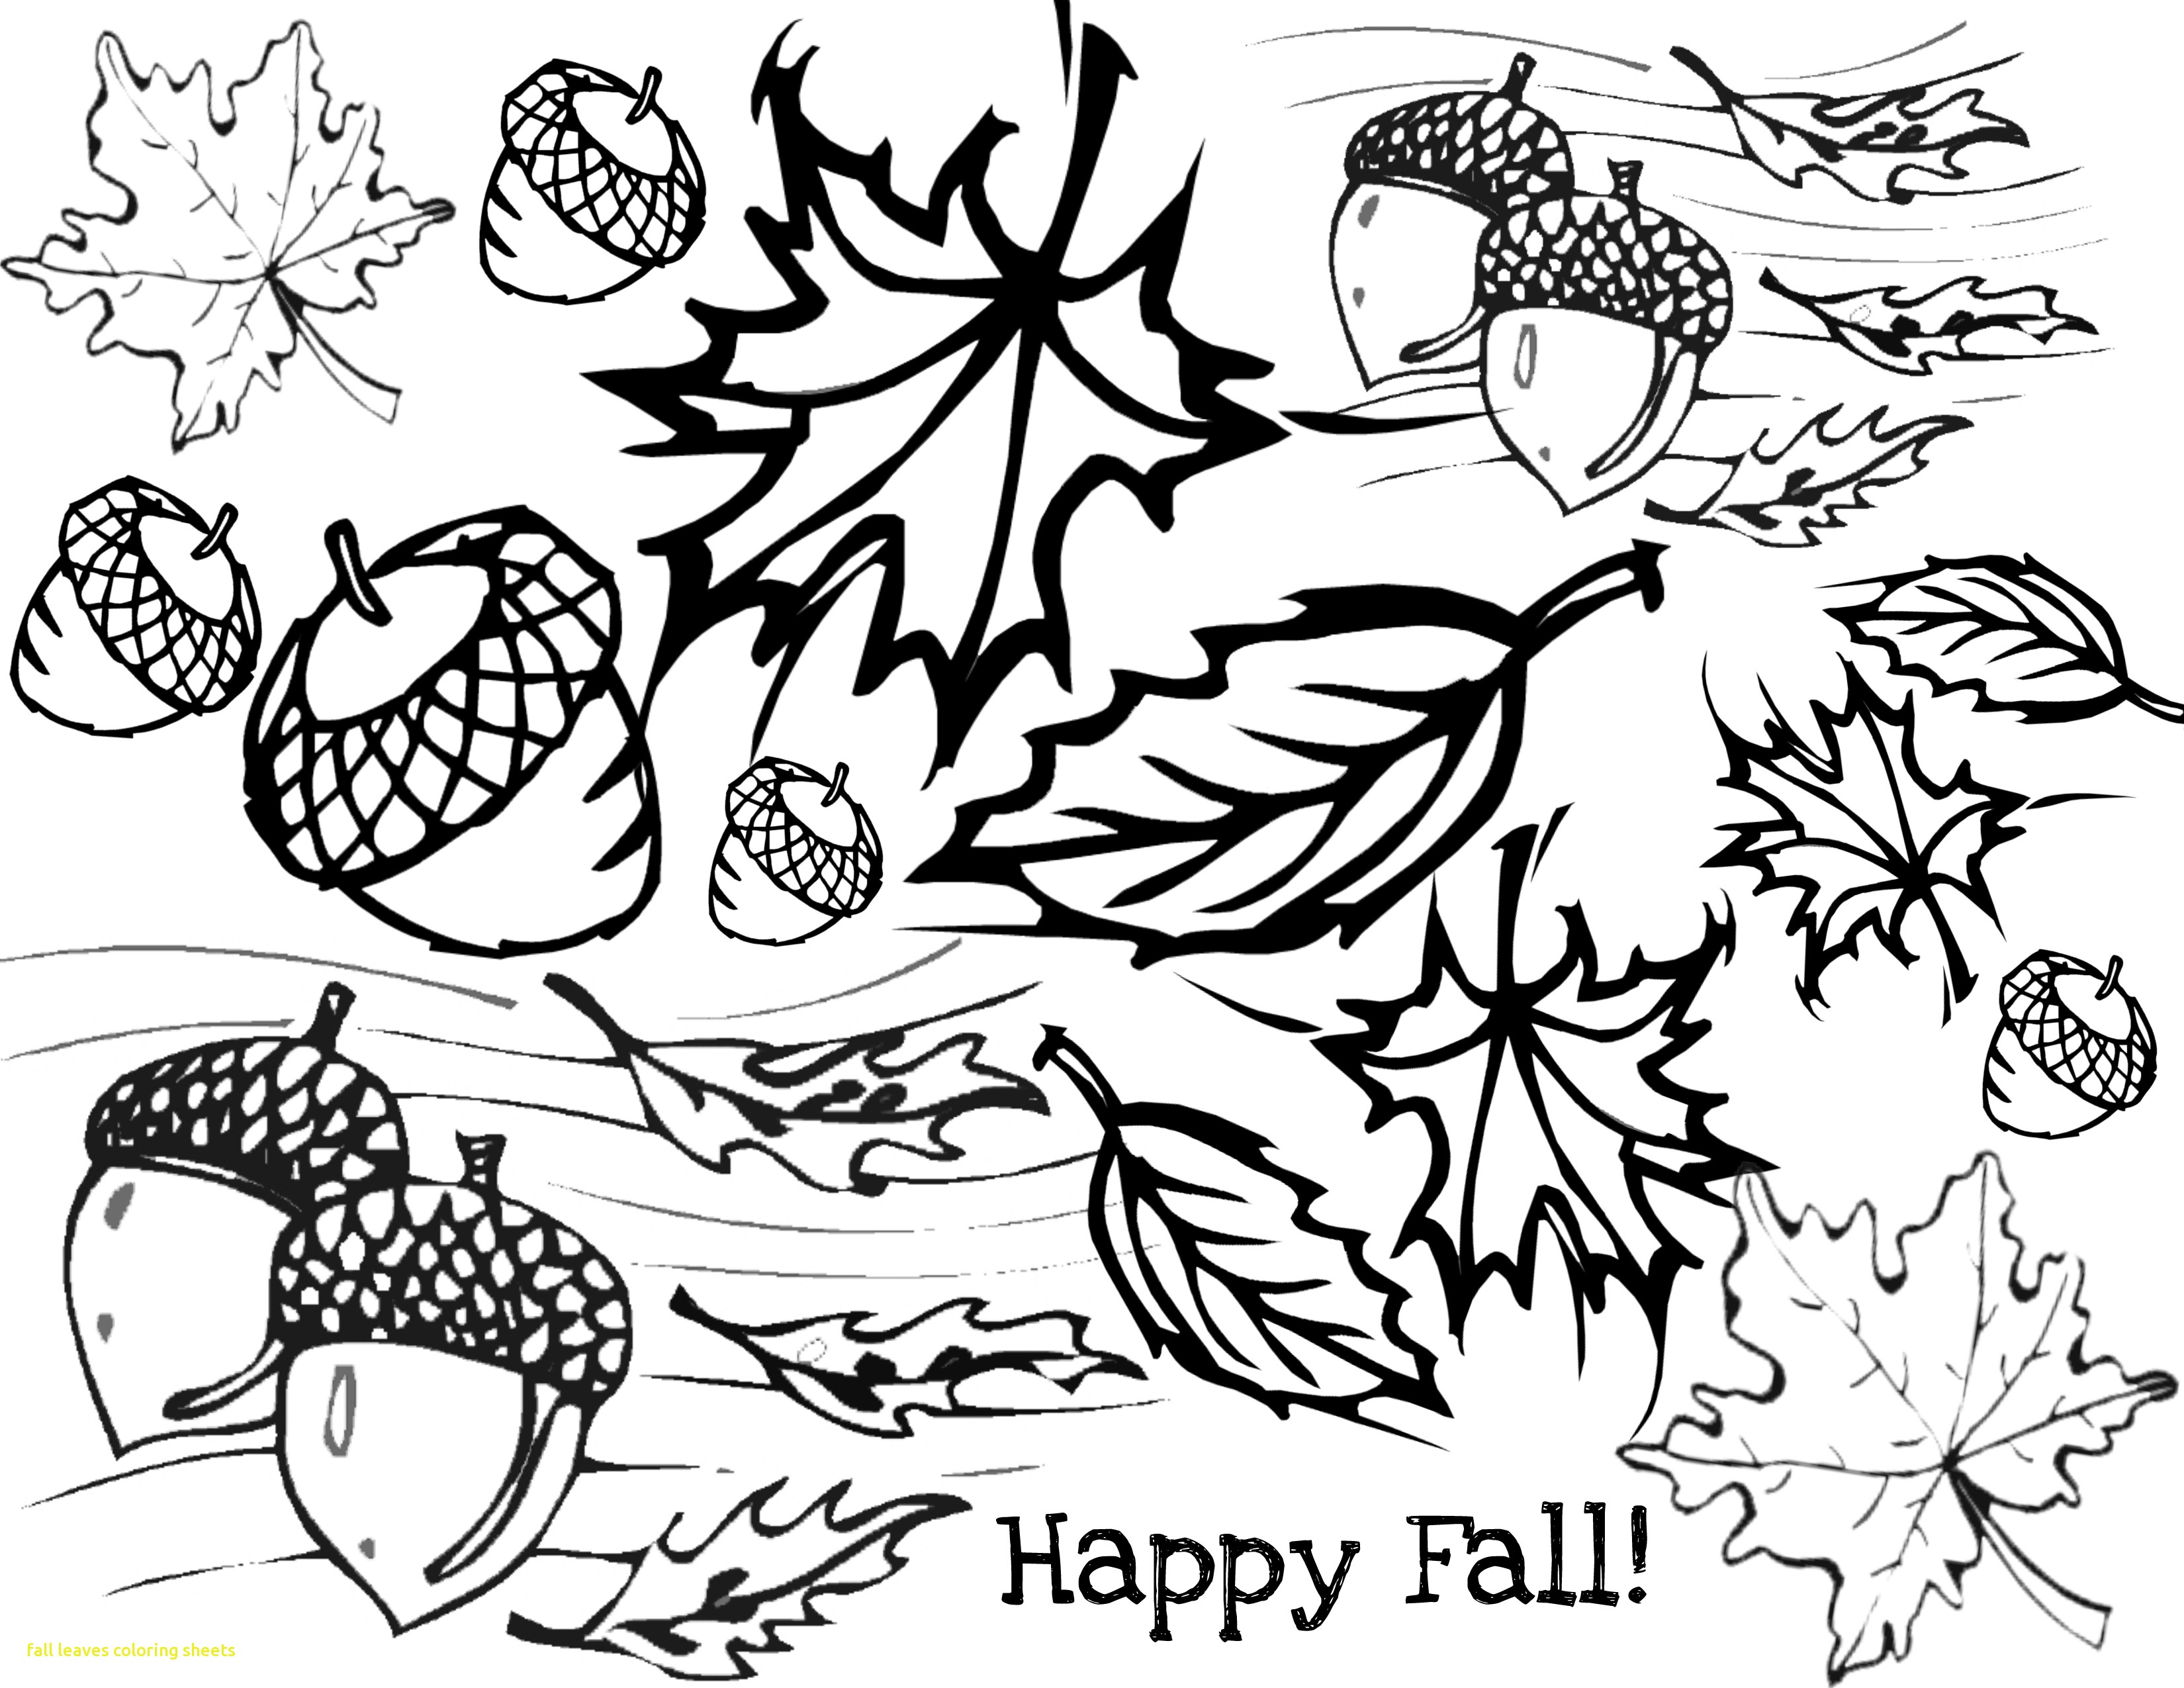 3300x2550 Fall Leaves Coloring Sheets With Fall Leaves Coloring Pages